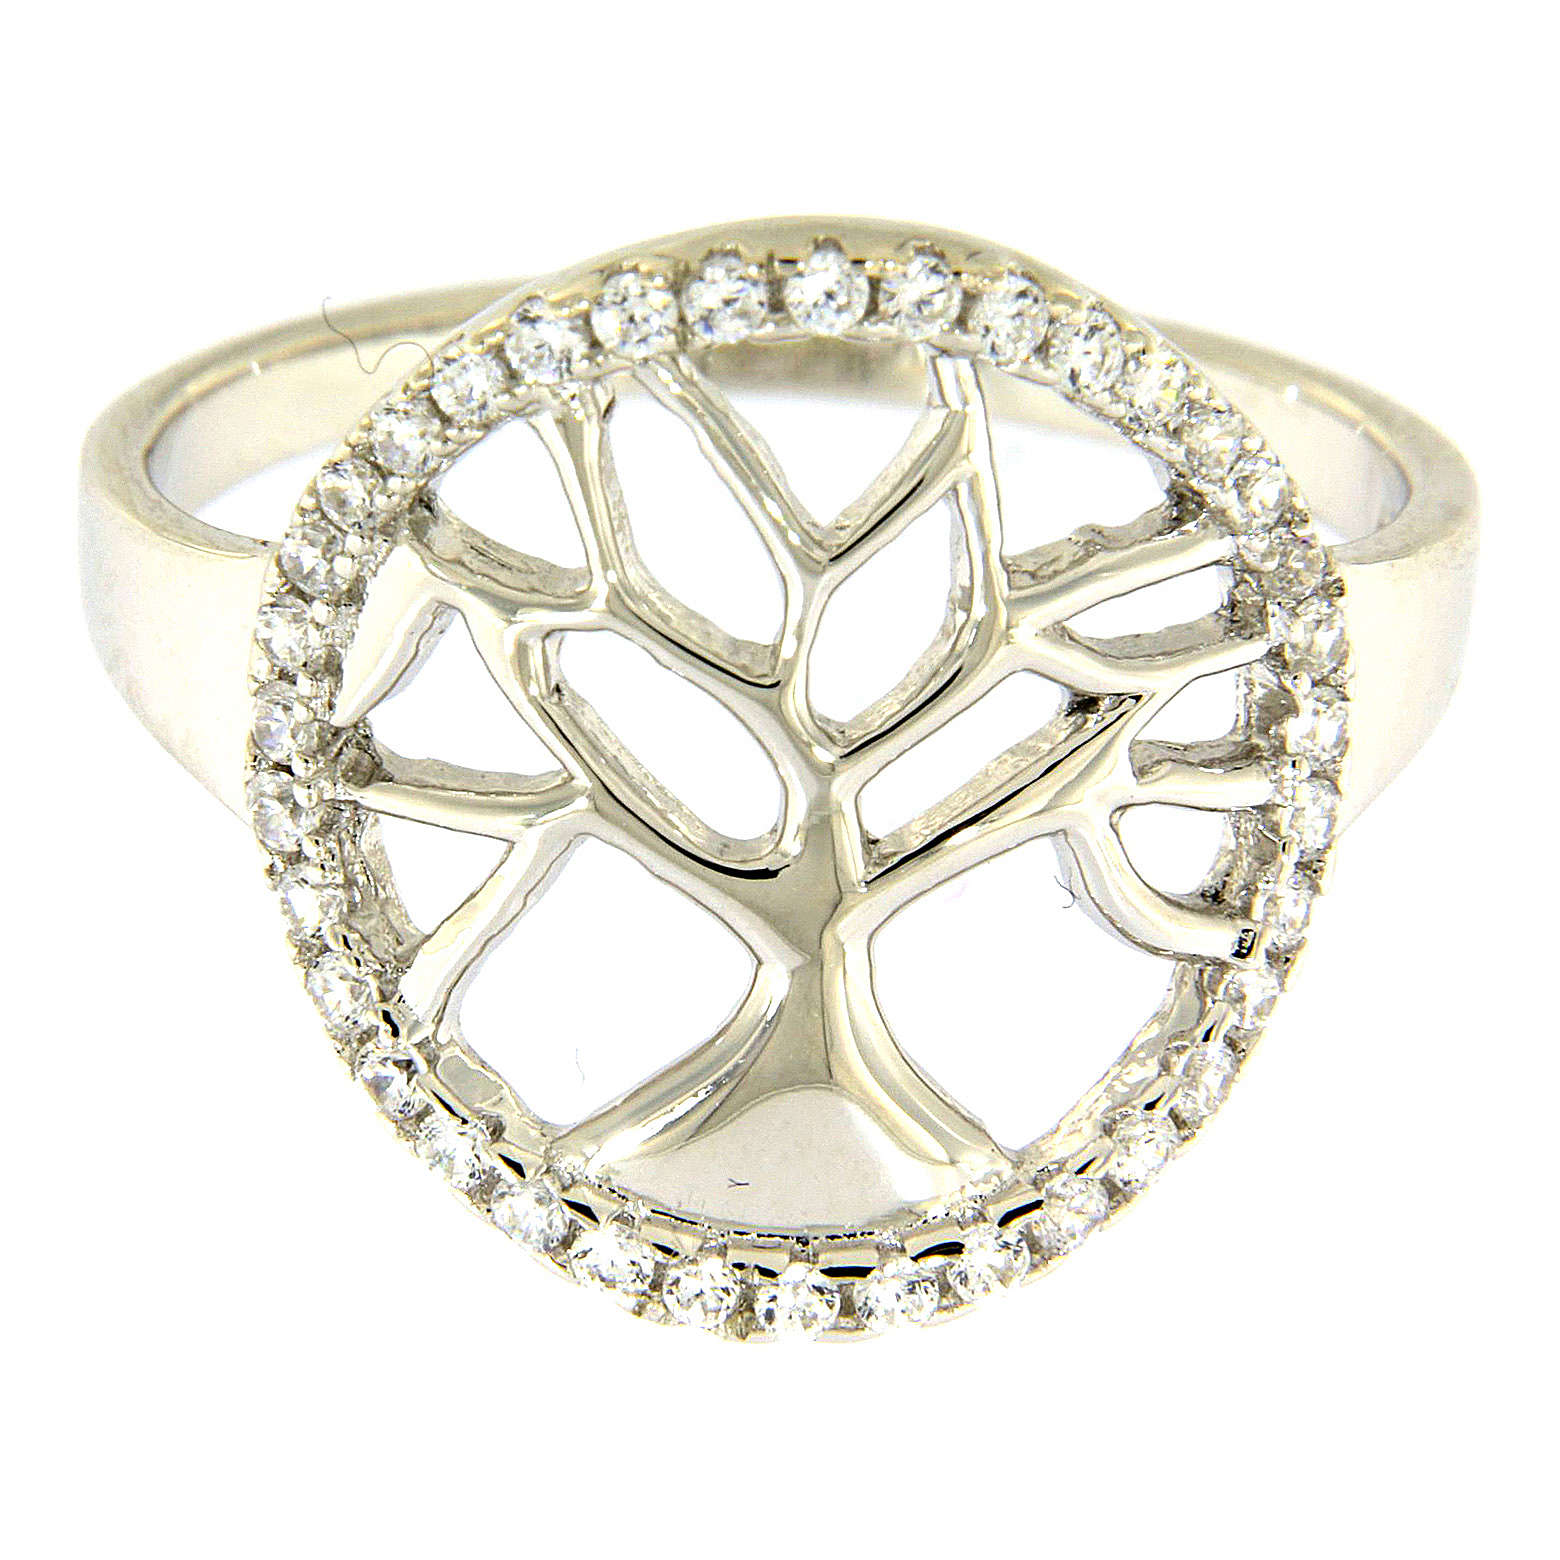 AMEN 925 sterling silver ring finished in rhodium with zirconate circle and tree 3